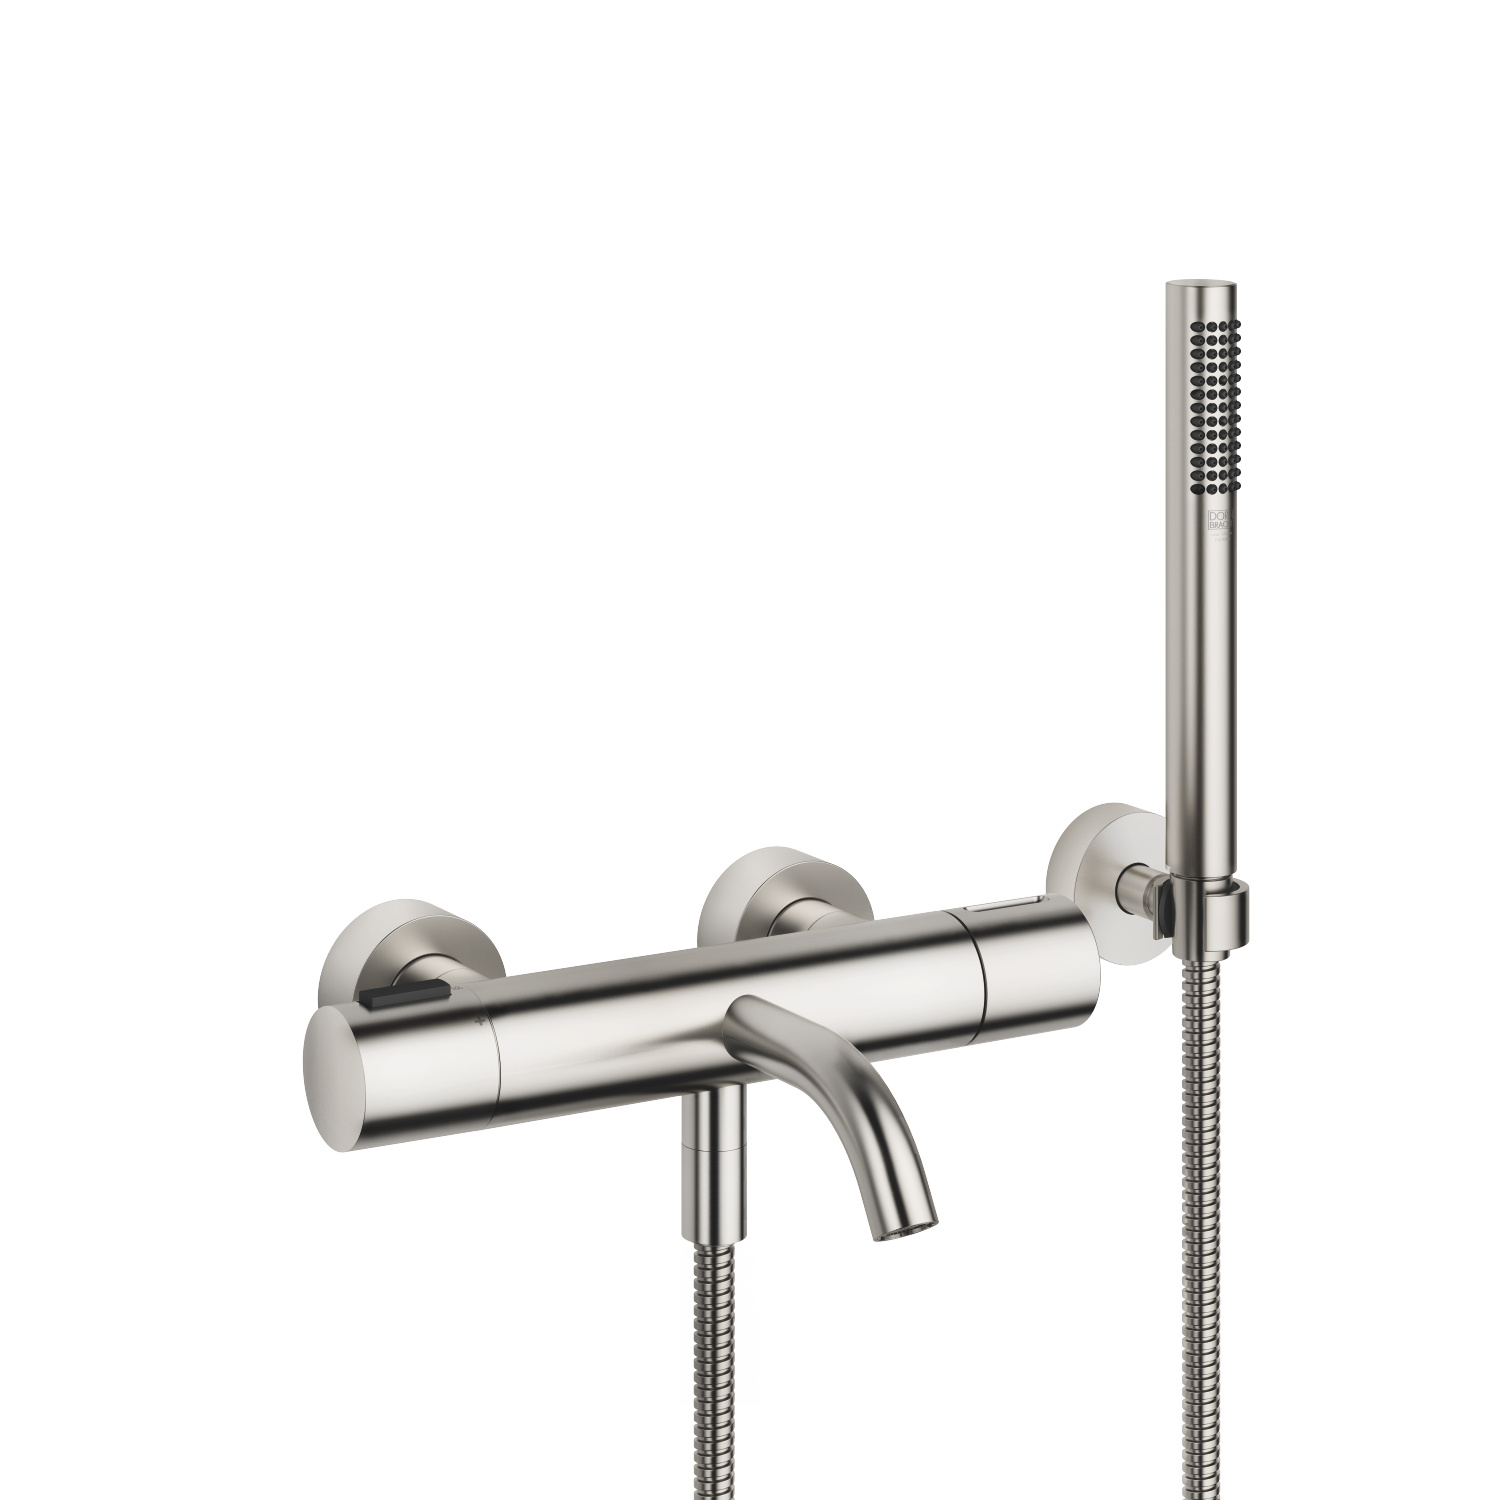 Tub thermostat for wall-mounted installation with hand shower set - platinum matte - 34 234 979-06